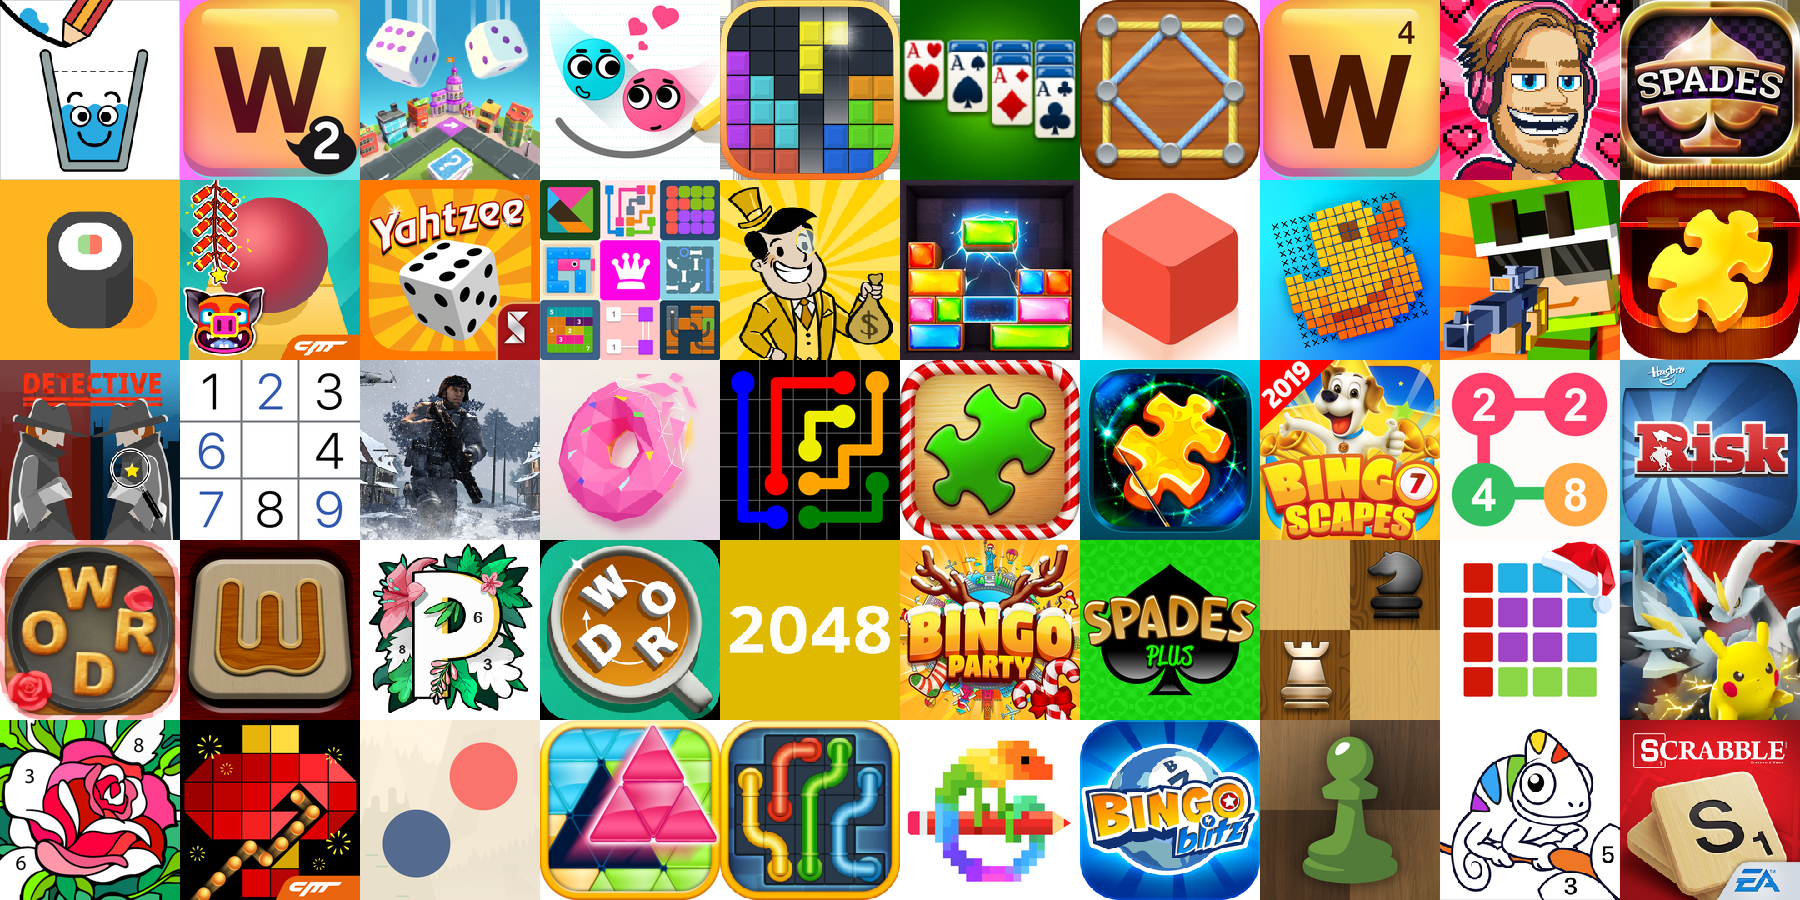 App icons of Top 50 mobile games in the US App Store Game - Board Category